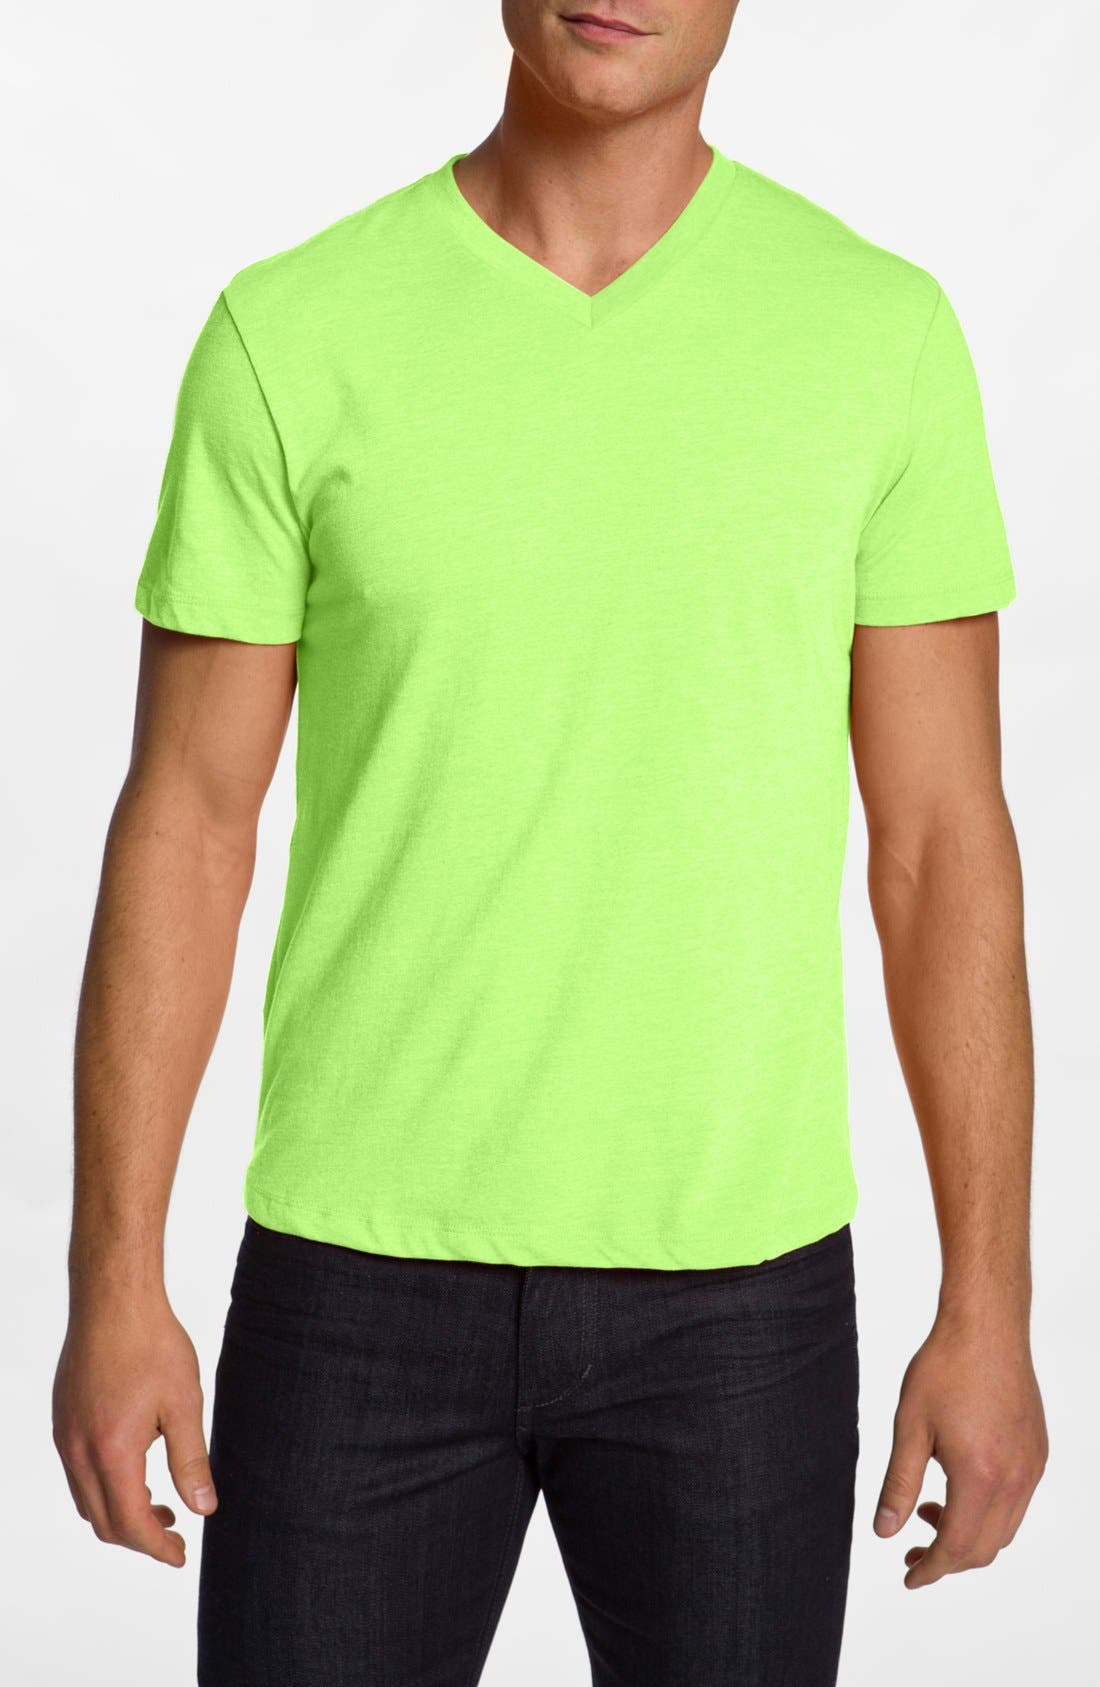 Main Image - The Rail Trim Fit V-Neck T-Shirt